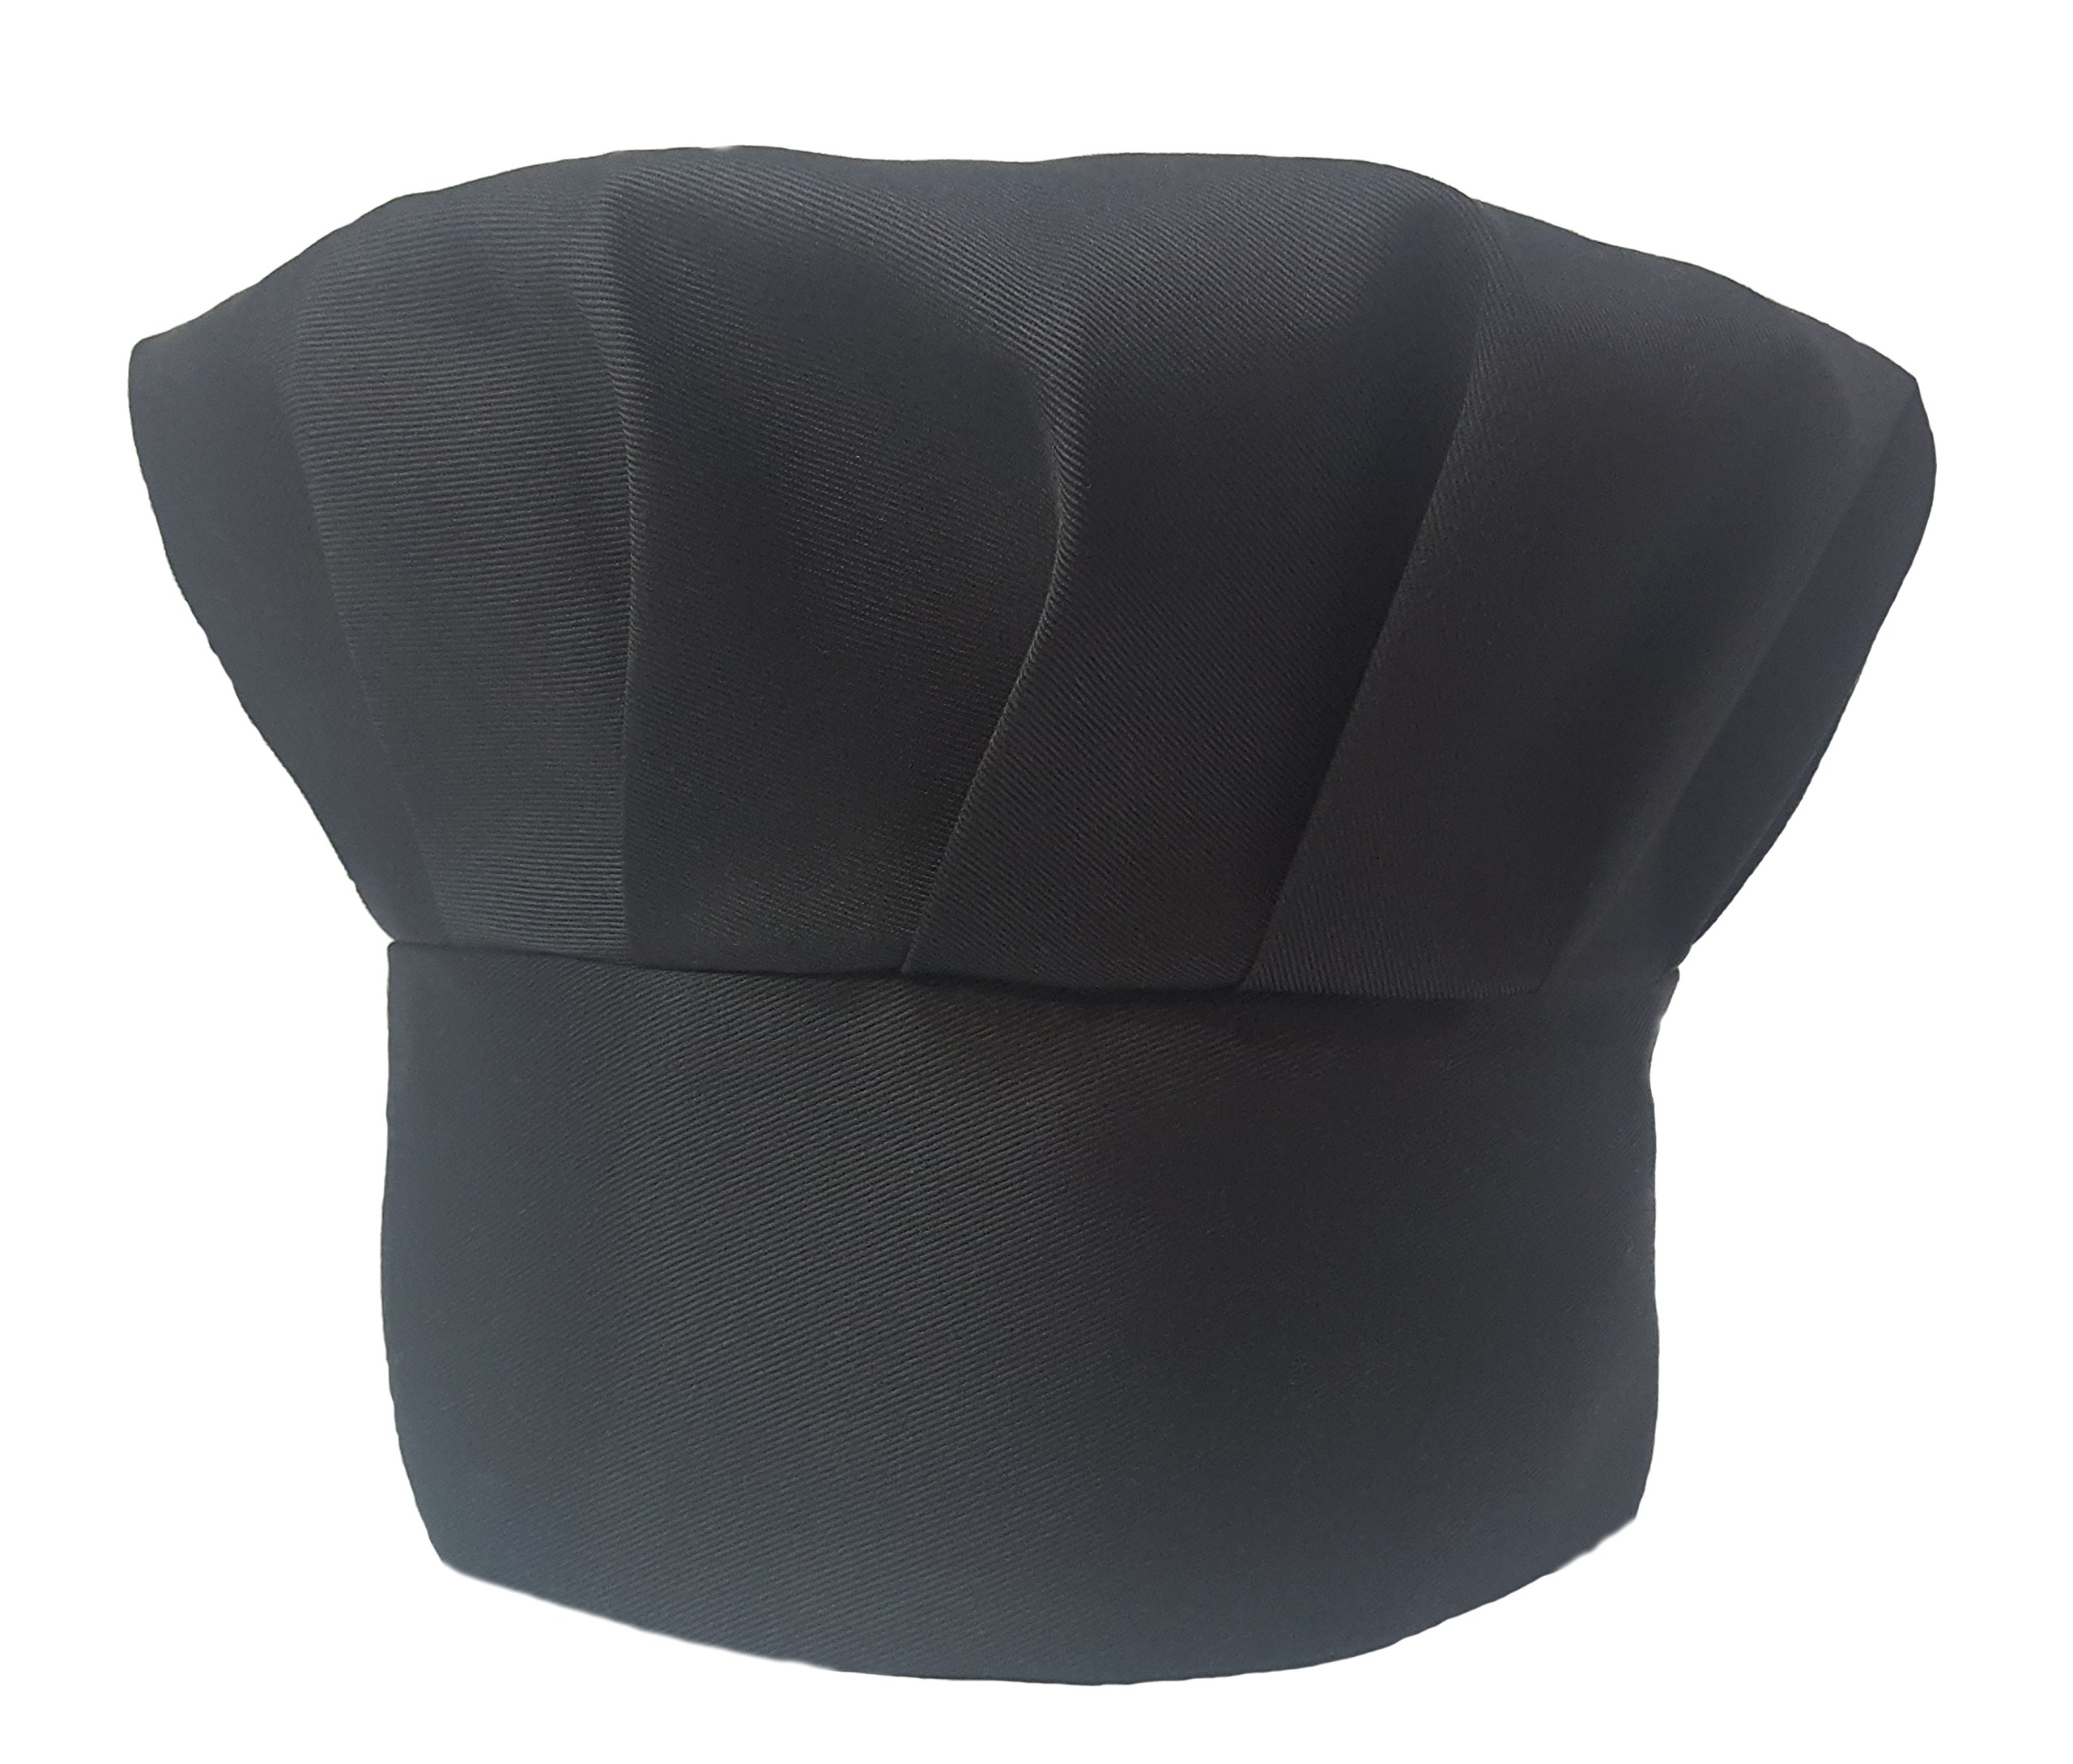 1a98ef564eeff Get Quotations · Obvious Chef - Black Chef Hat - Adjustable Velcro Fit -  Adult (Black)